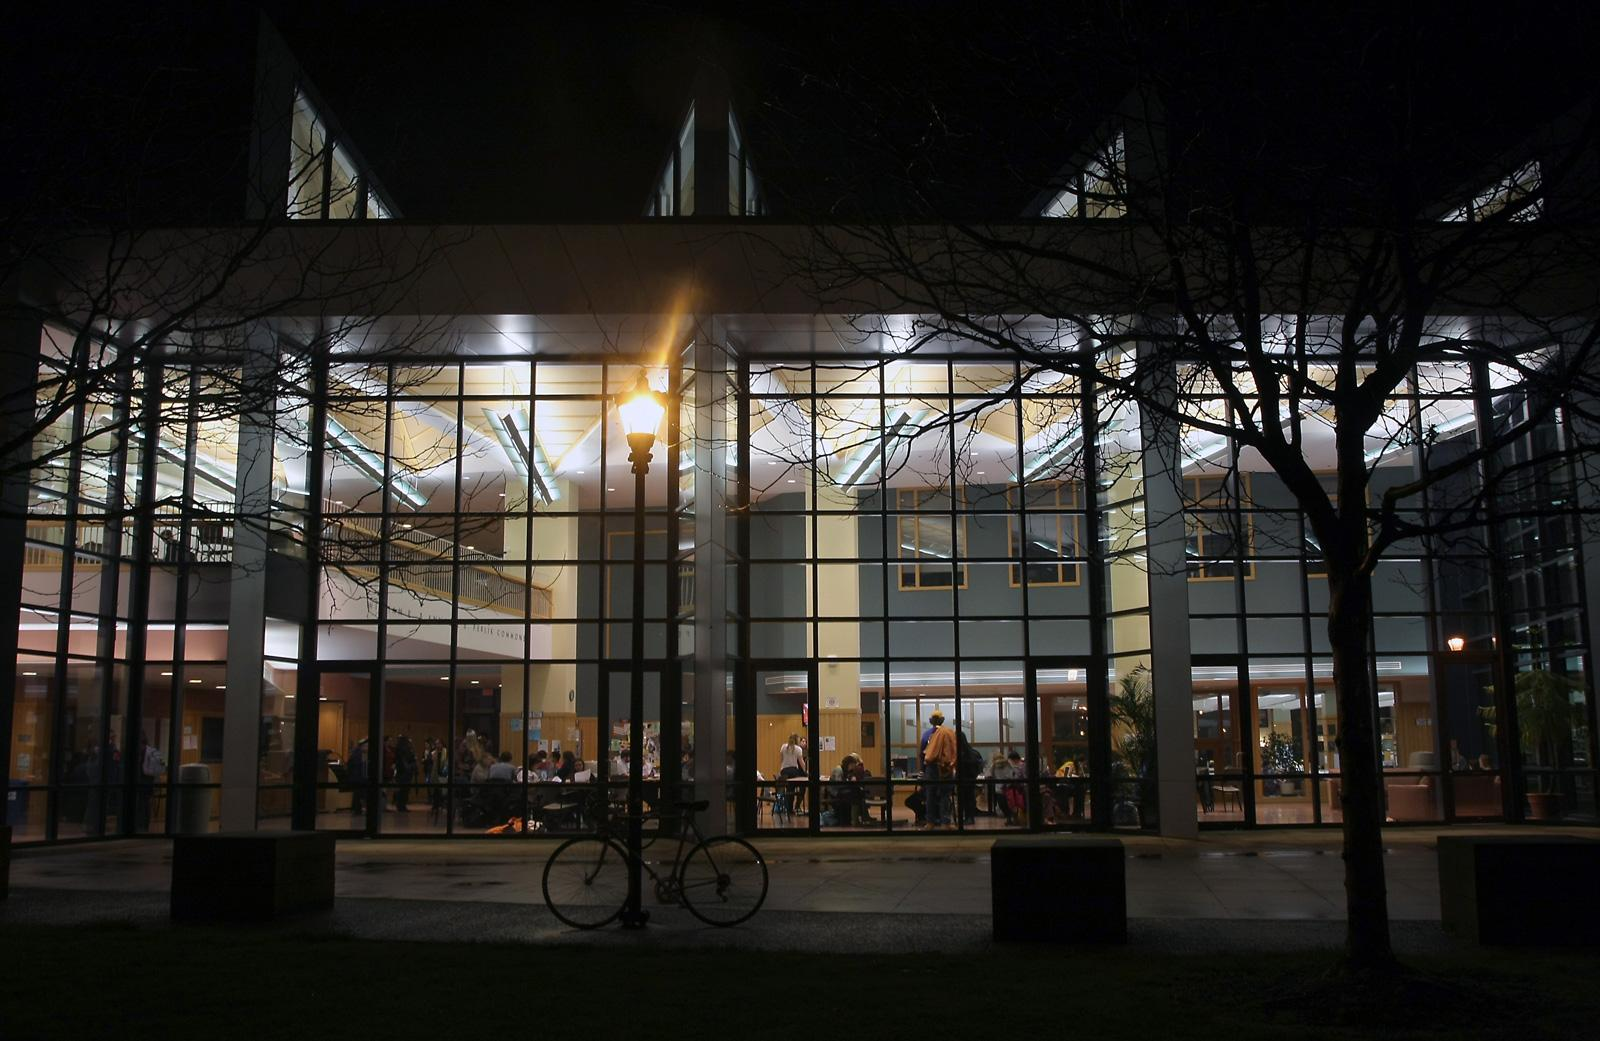 A glass-walled building at night.